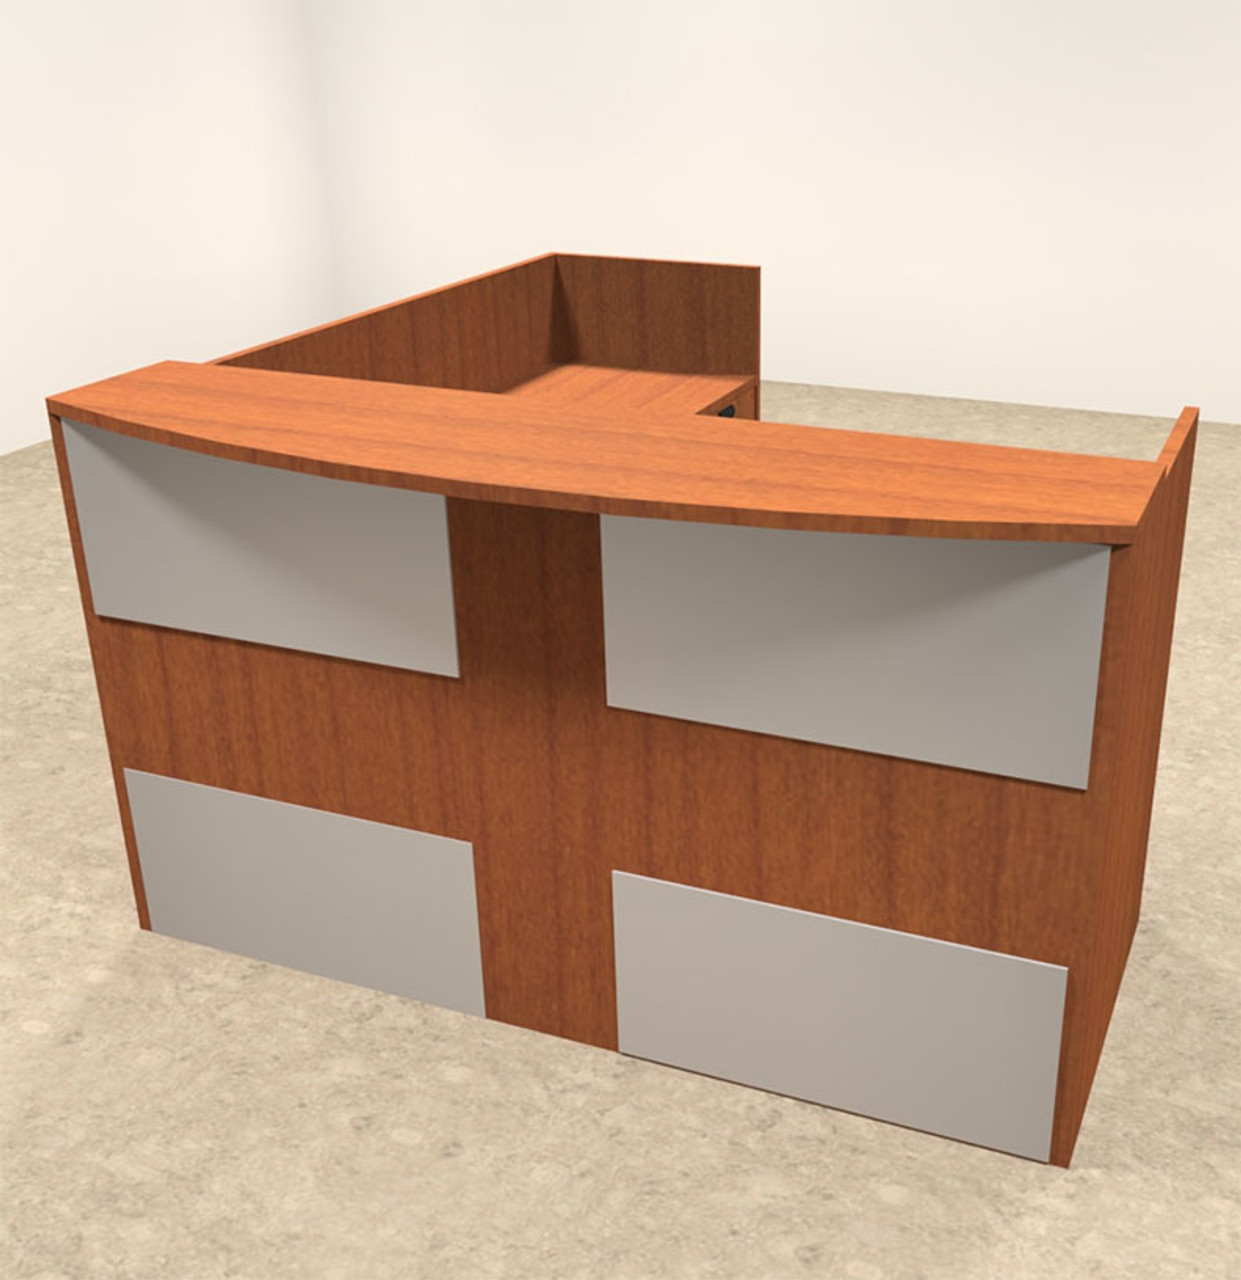 3pc L Shaped Modern Acrylic Panel Office Reception Desk, #OT-SUL-R21